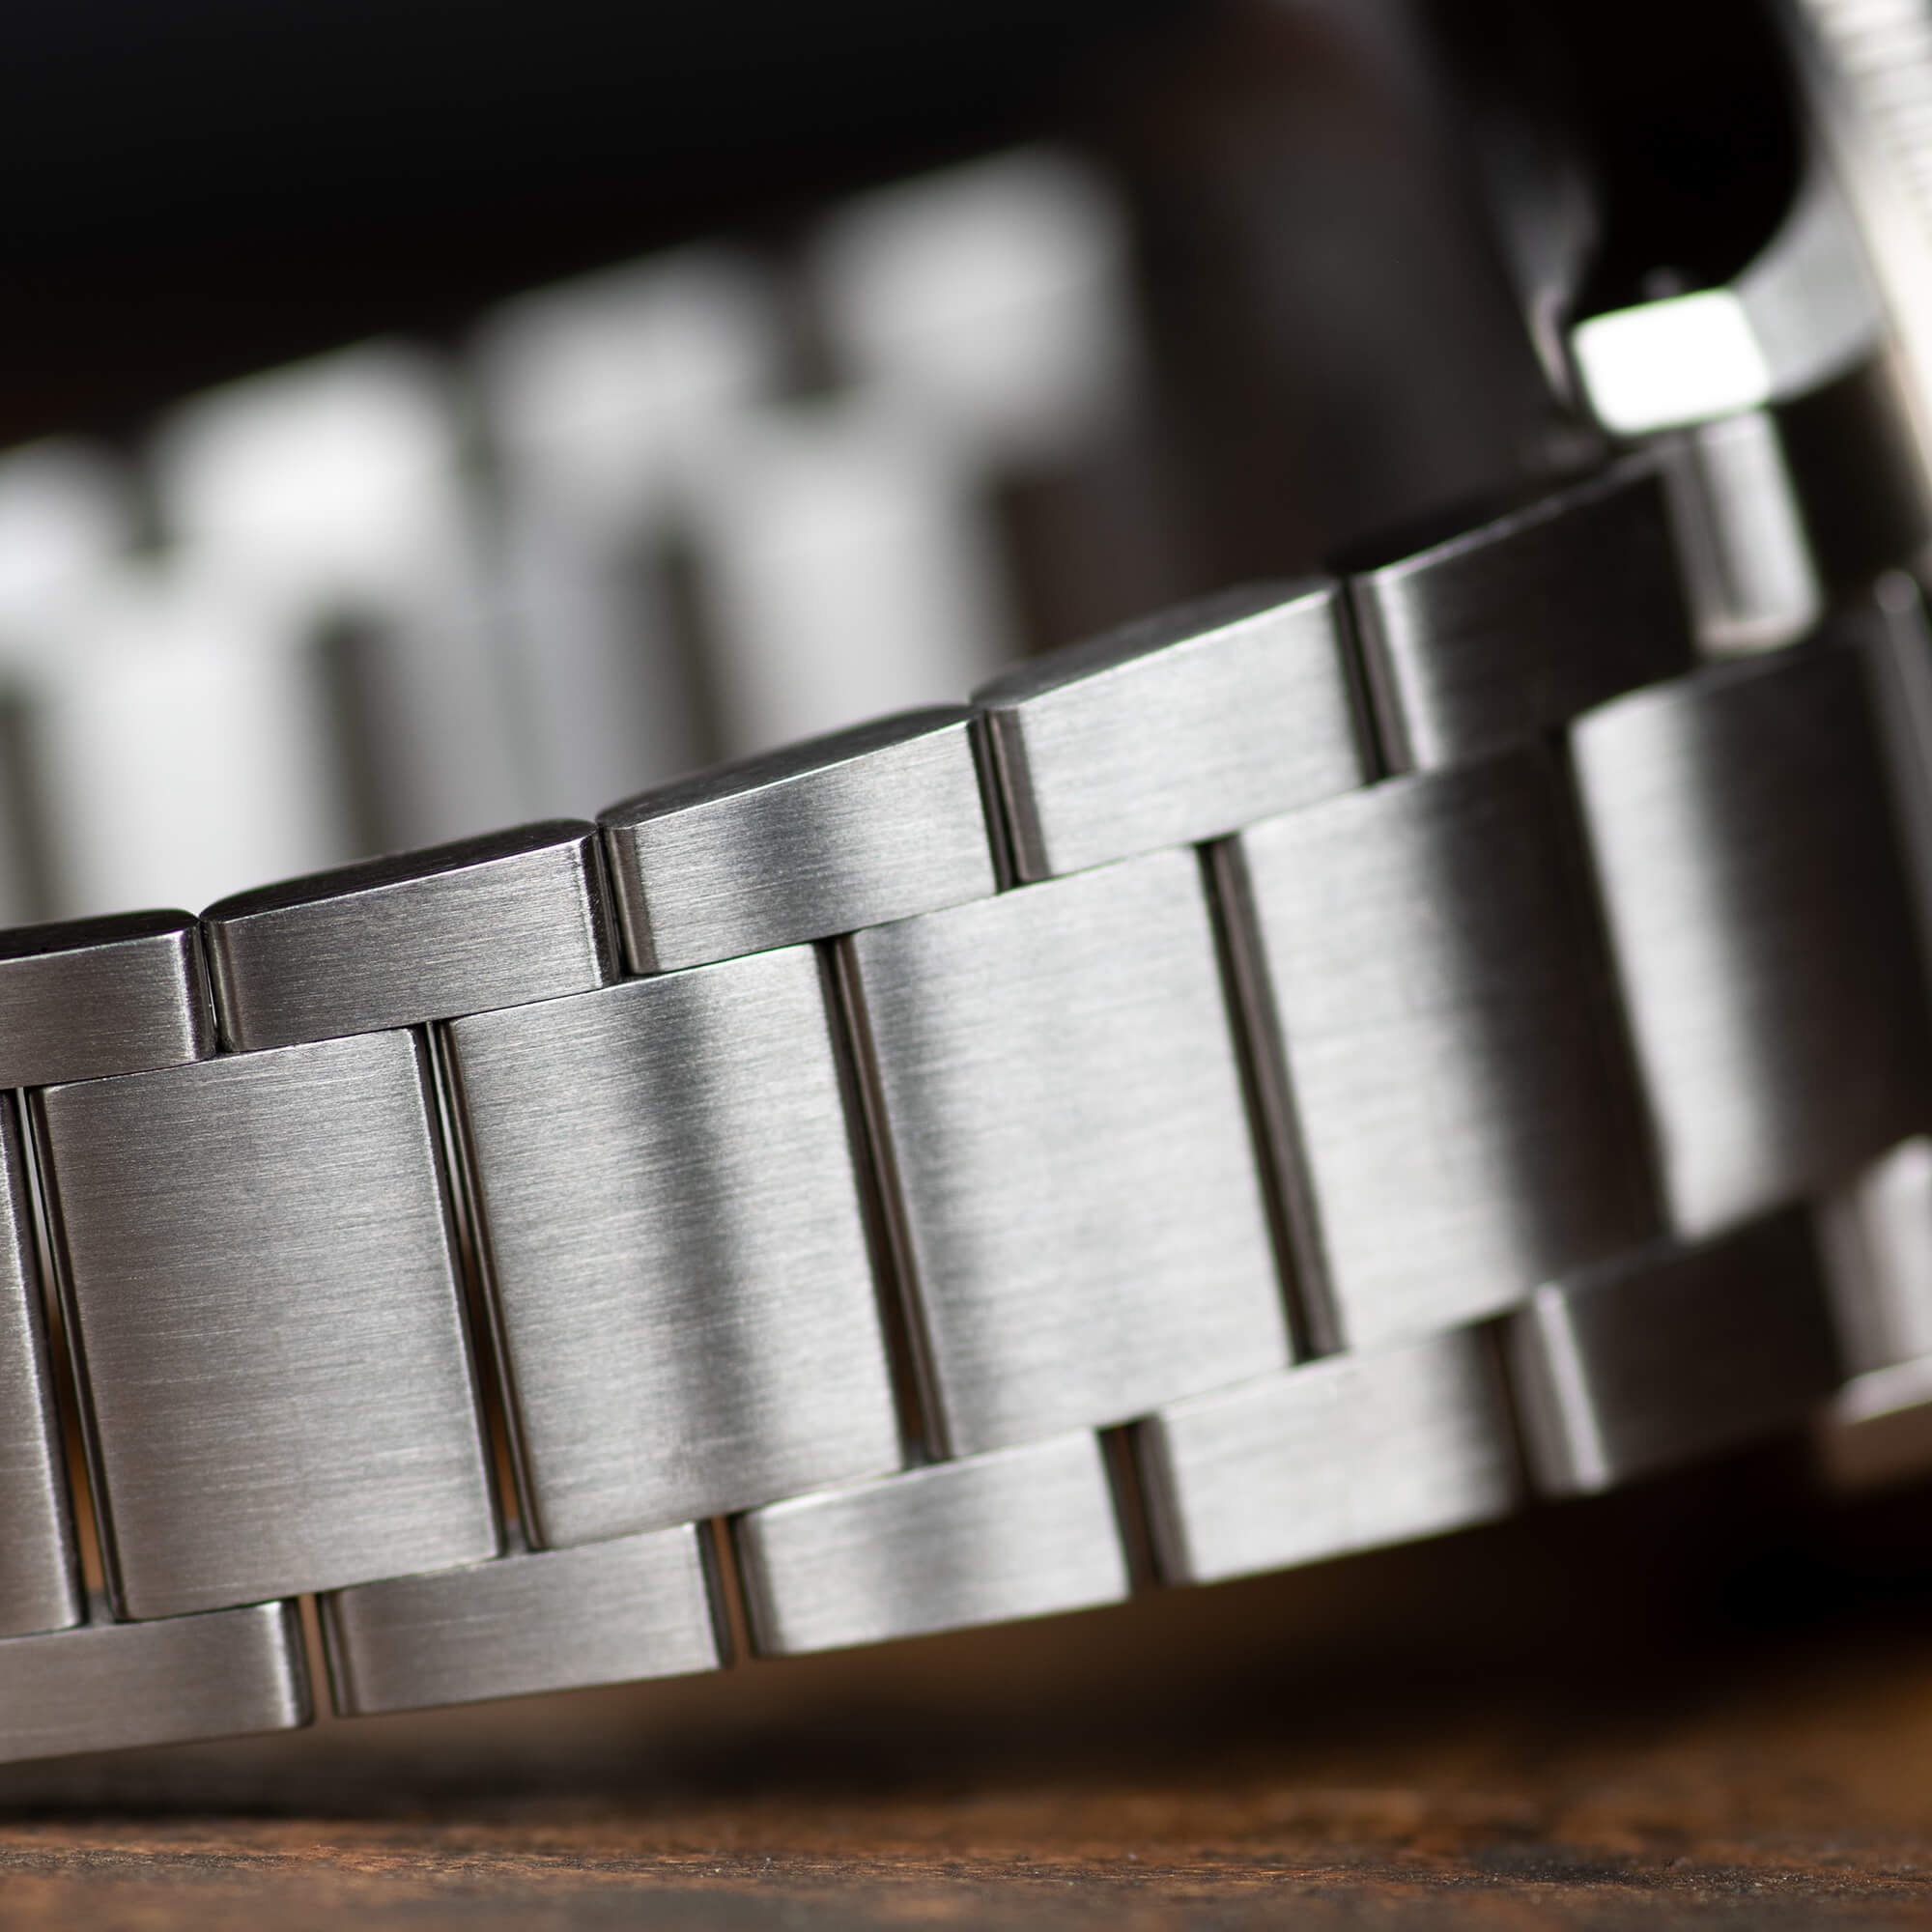 STEEL Bracelet - After 18 months of research, prototyping, and testing we're proud to introduce the first Oak & Oscar bracelet. Our stainless steel bracelet sits comfortably on the wrist with a fully articulated link design that gradually tapers from the 20mm solid end links to the 16mm buckle. Ready to tackle the elements, the Oak & Oscar bracelet is built for comfort and durability.